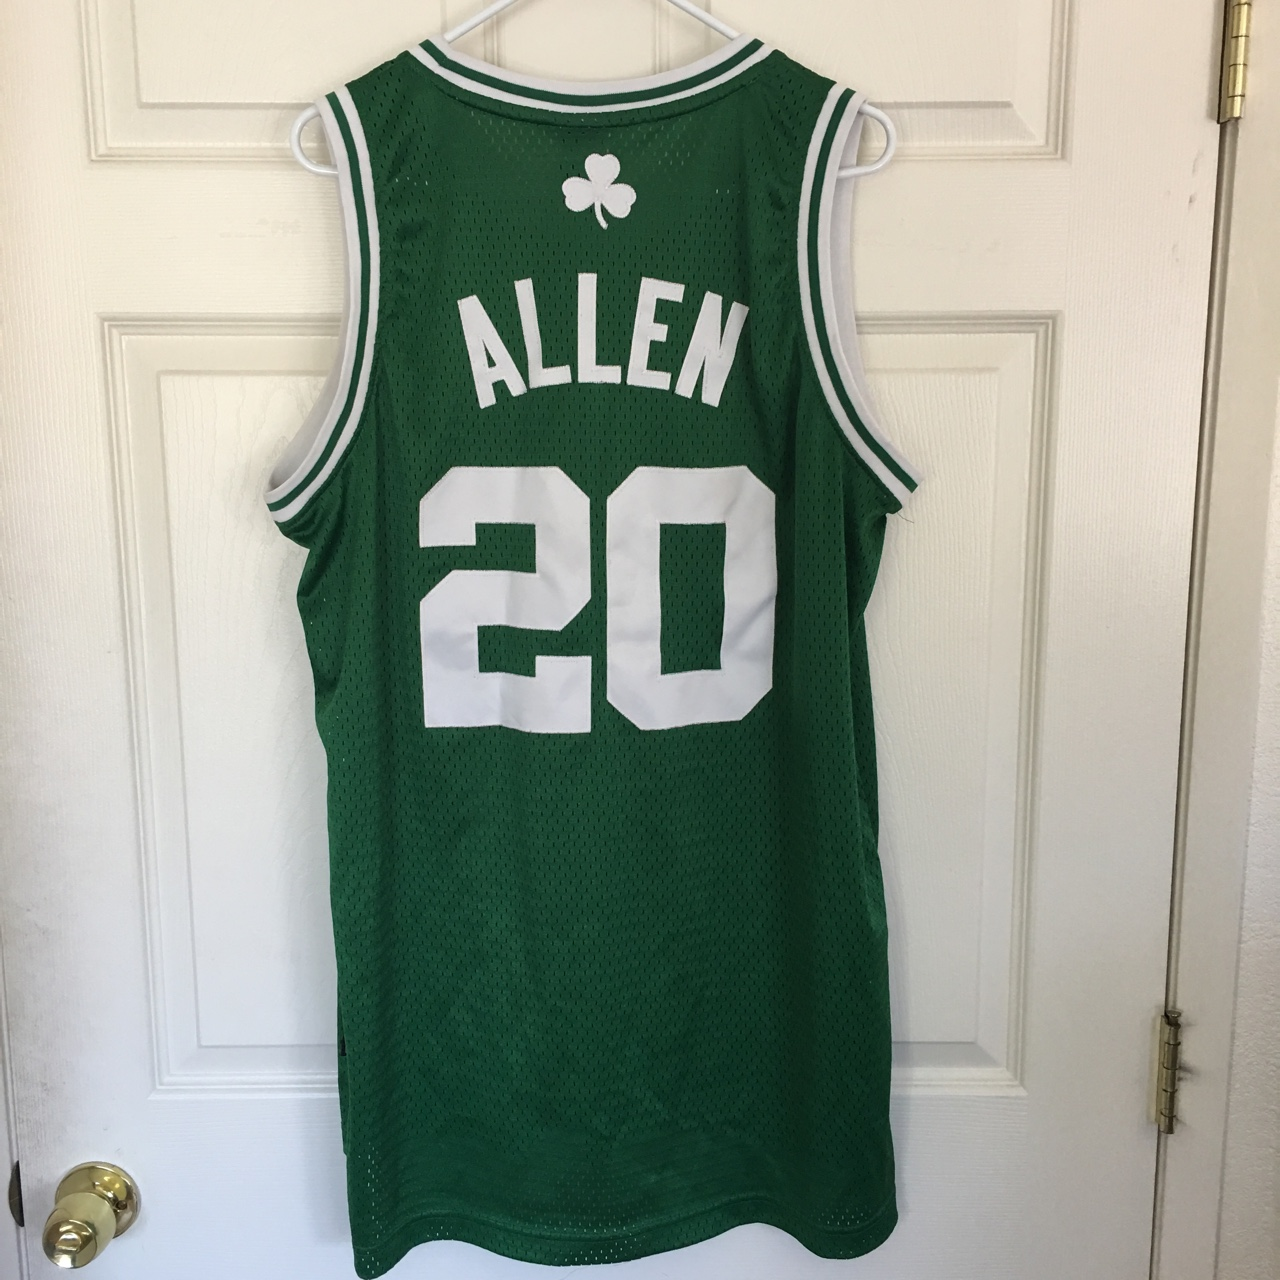 420607c84a Adidas Boston Celtics Jersey with Allen on the back.... - Depop